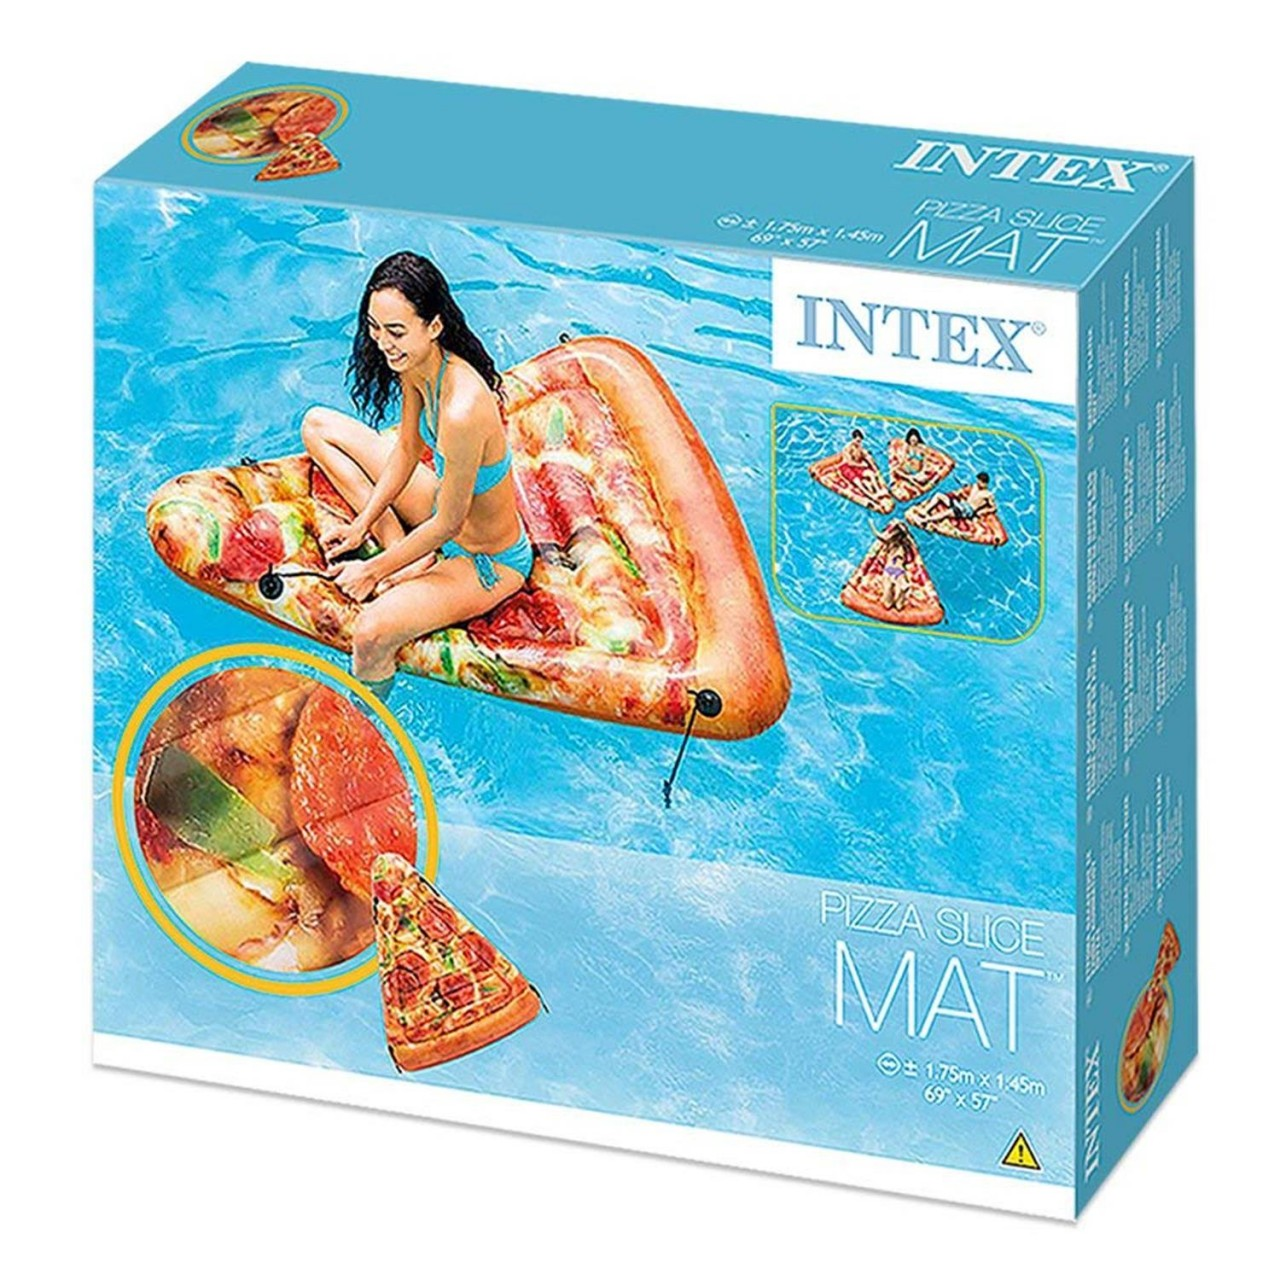 Intex 58752 Luftmatratze Pizza Lounge Matratze 175x145 cm Badeinsel aufblasbar